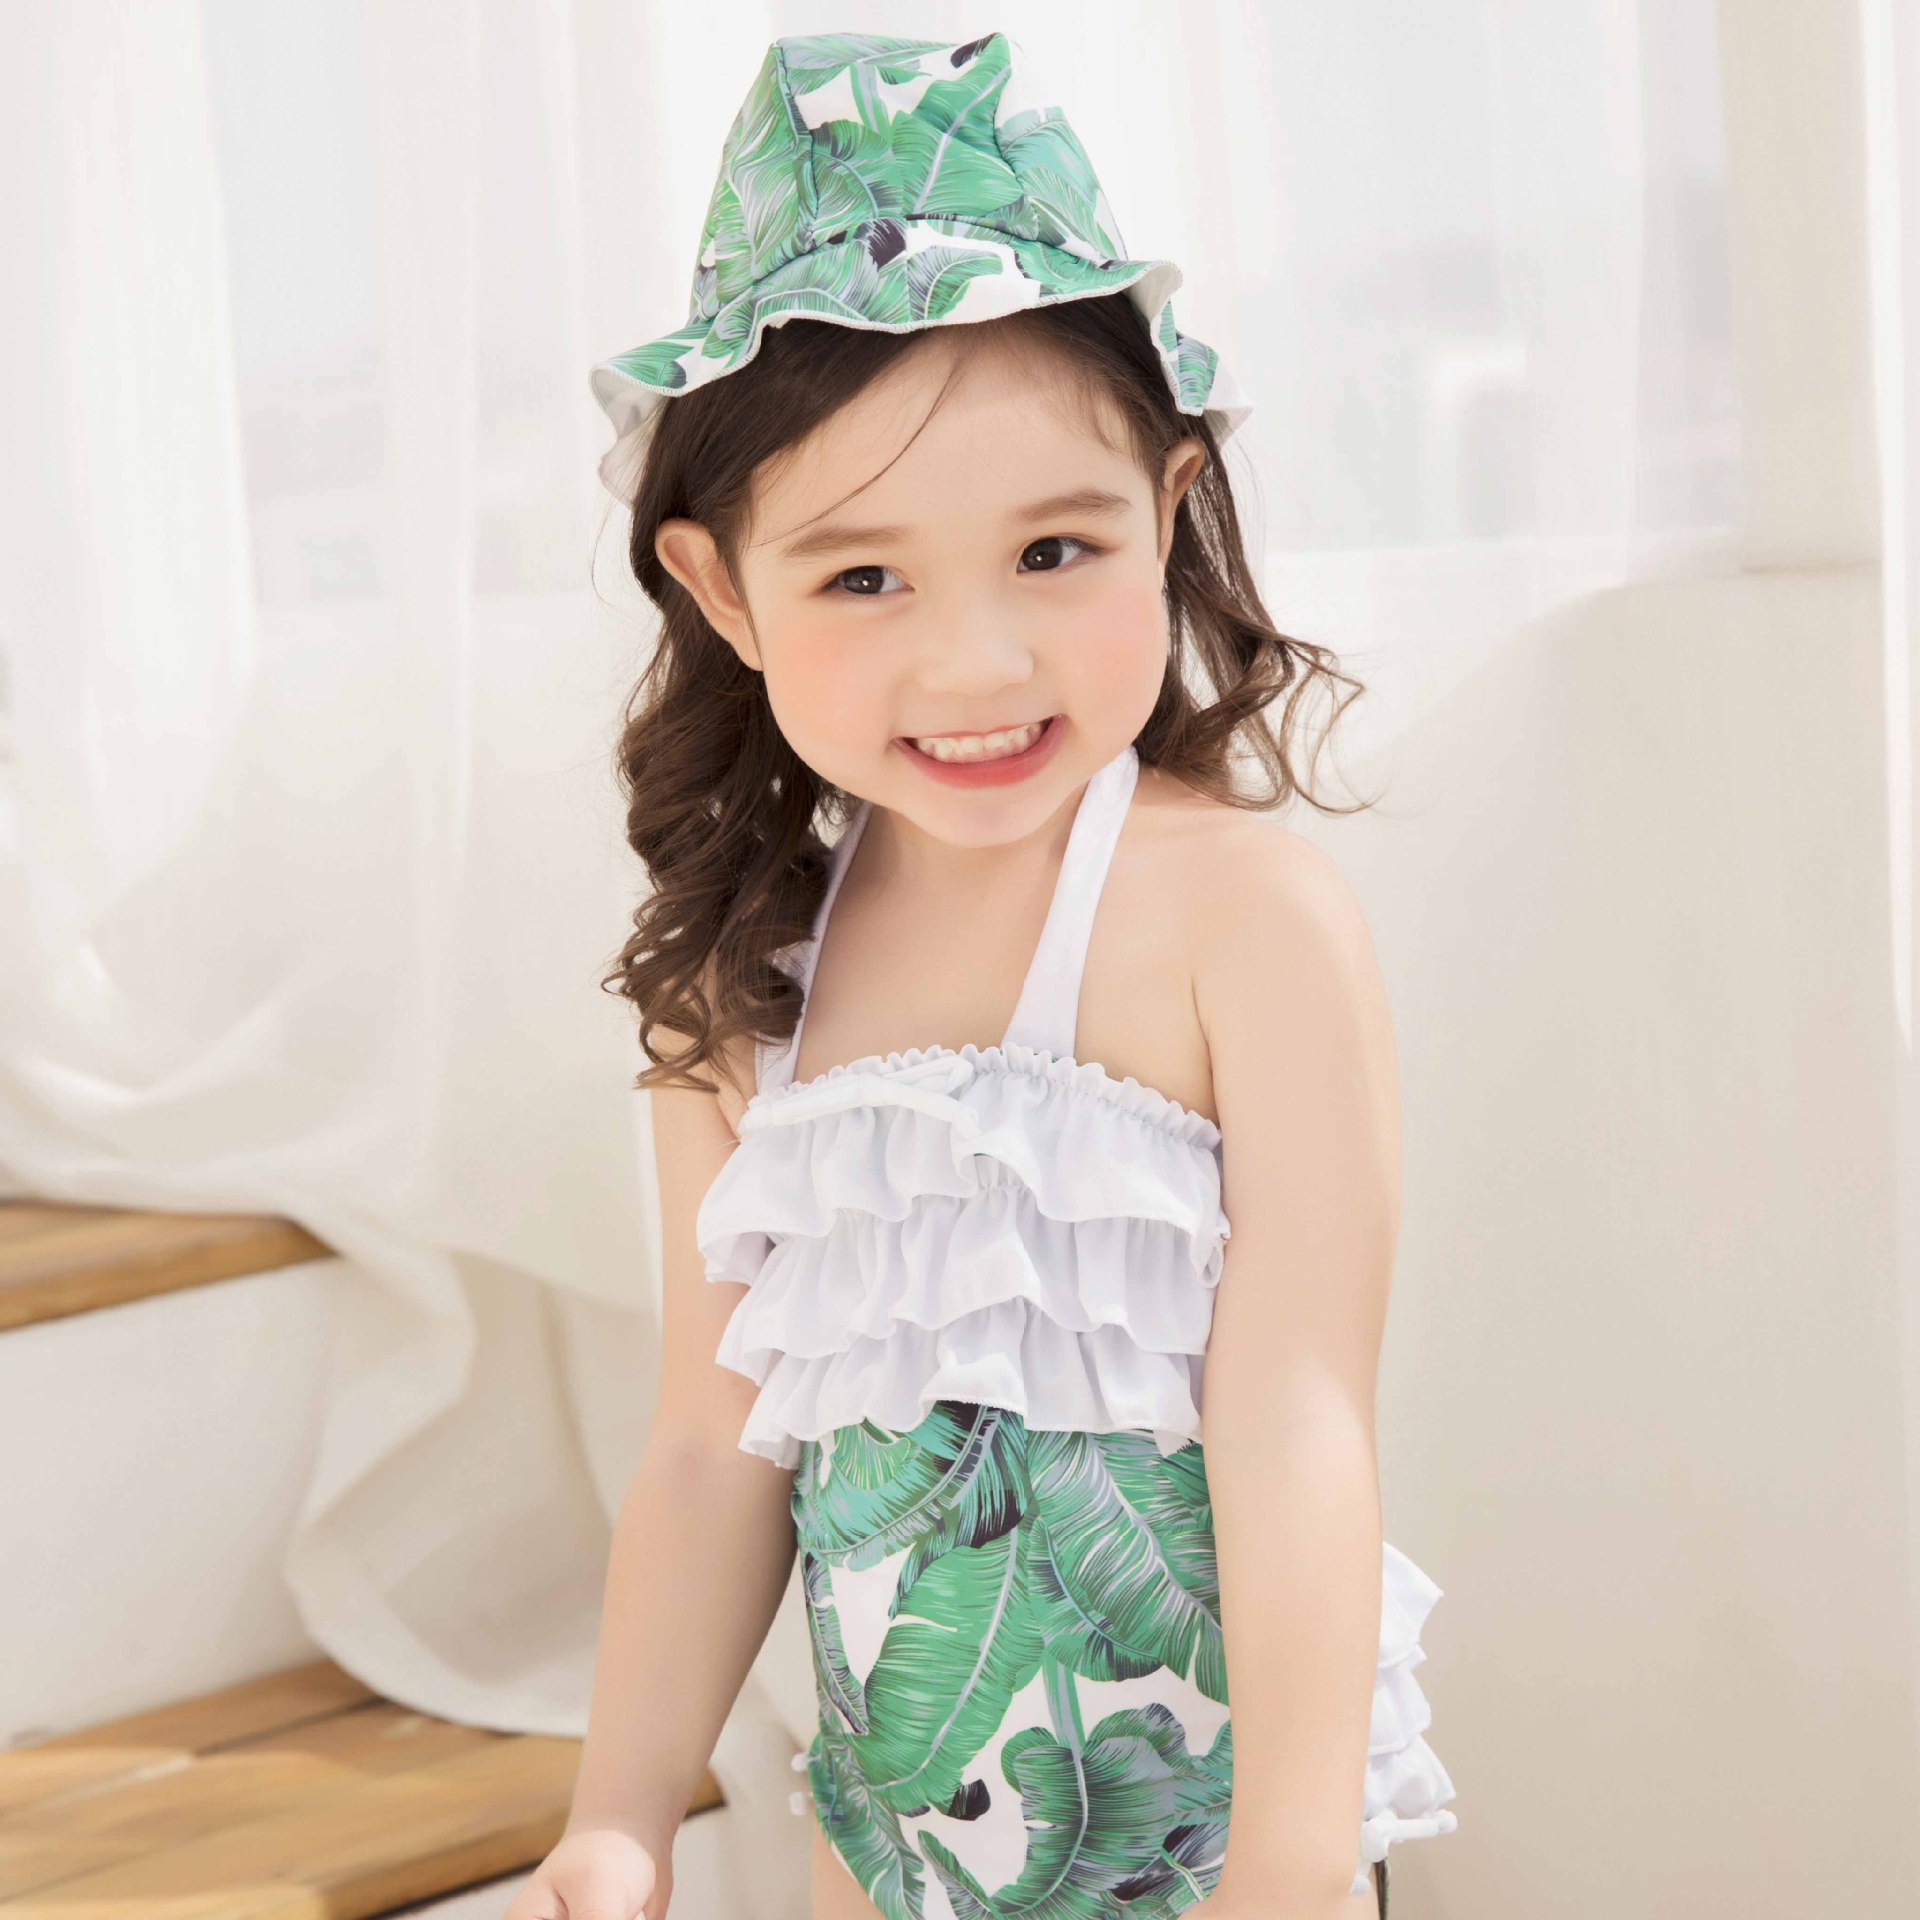 2018 Xiqi New Style KID'S Swimwear Green Leaf Printed GIRL'S One-piece Swimming Suit Retro Children Baby Bathing Suit